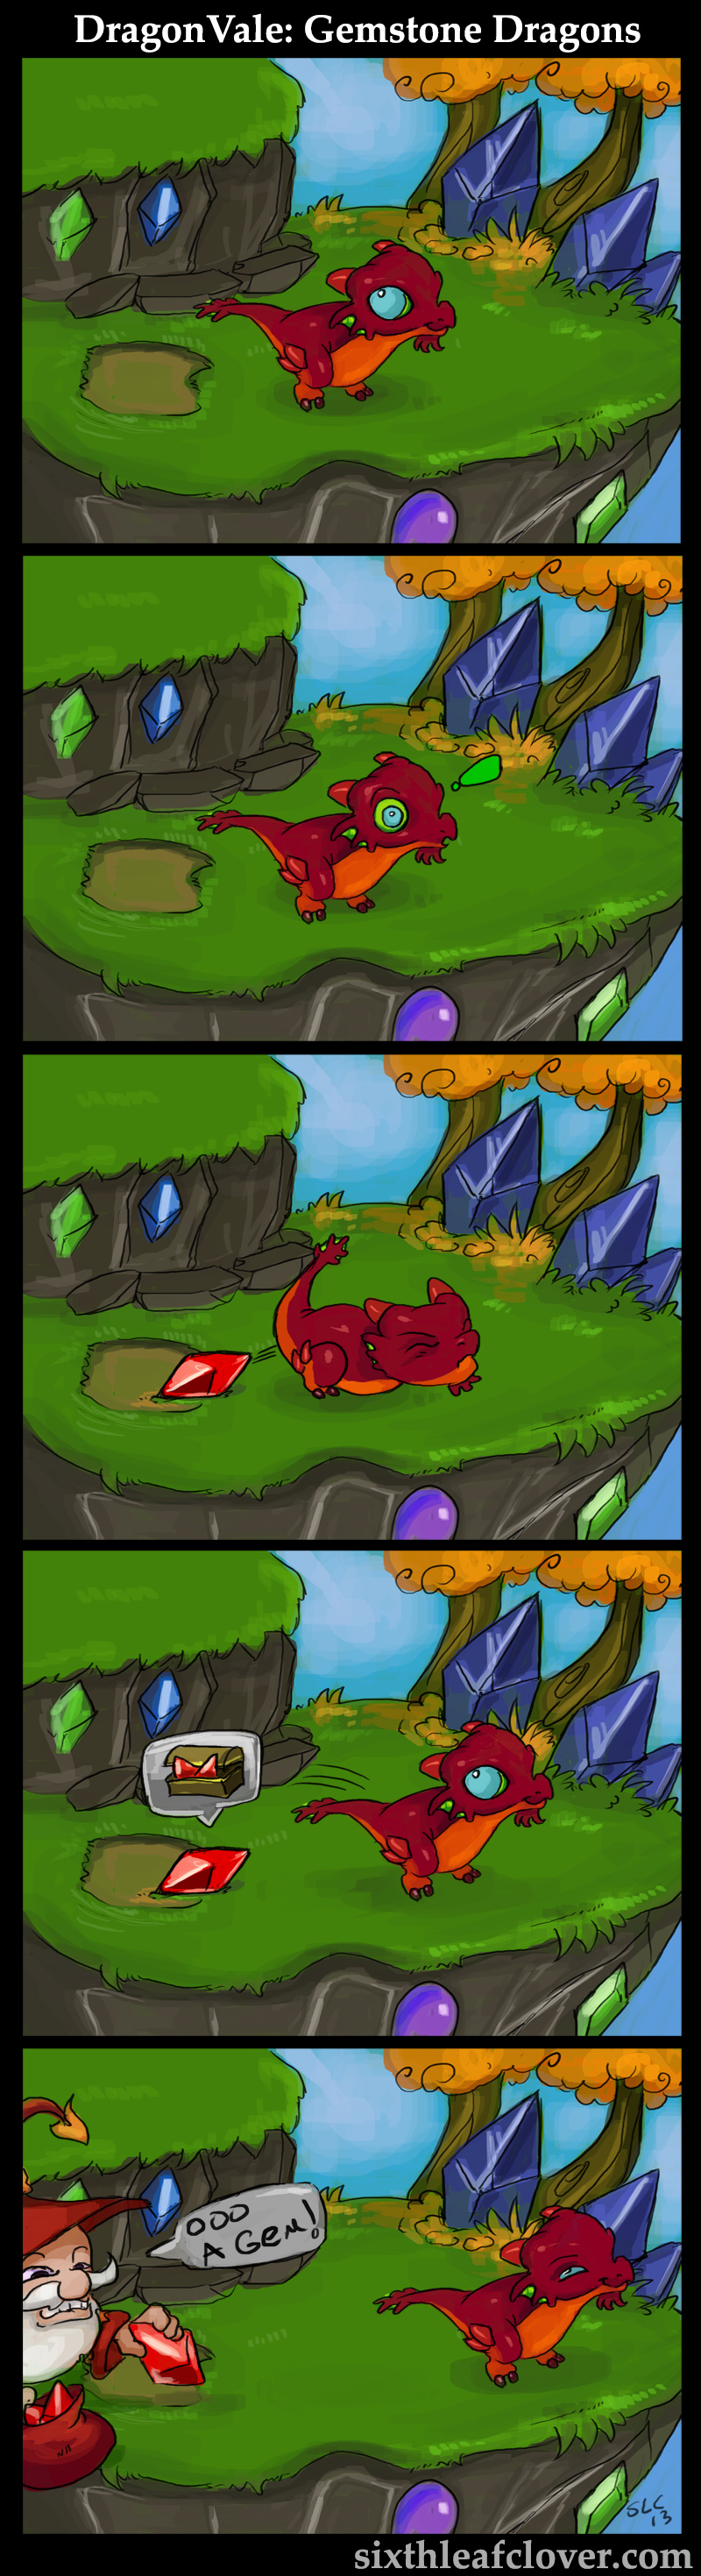 dragonvale gemstone dragons by the sixthleafclover on